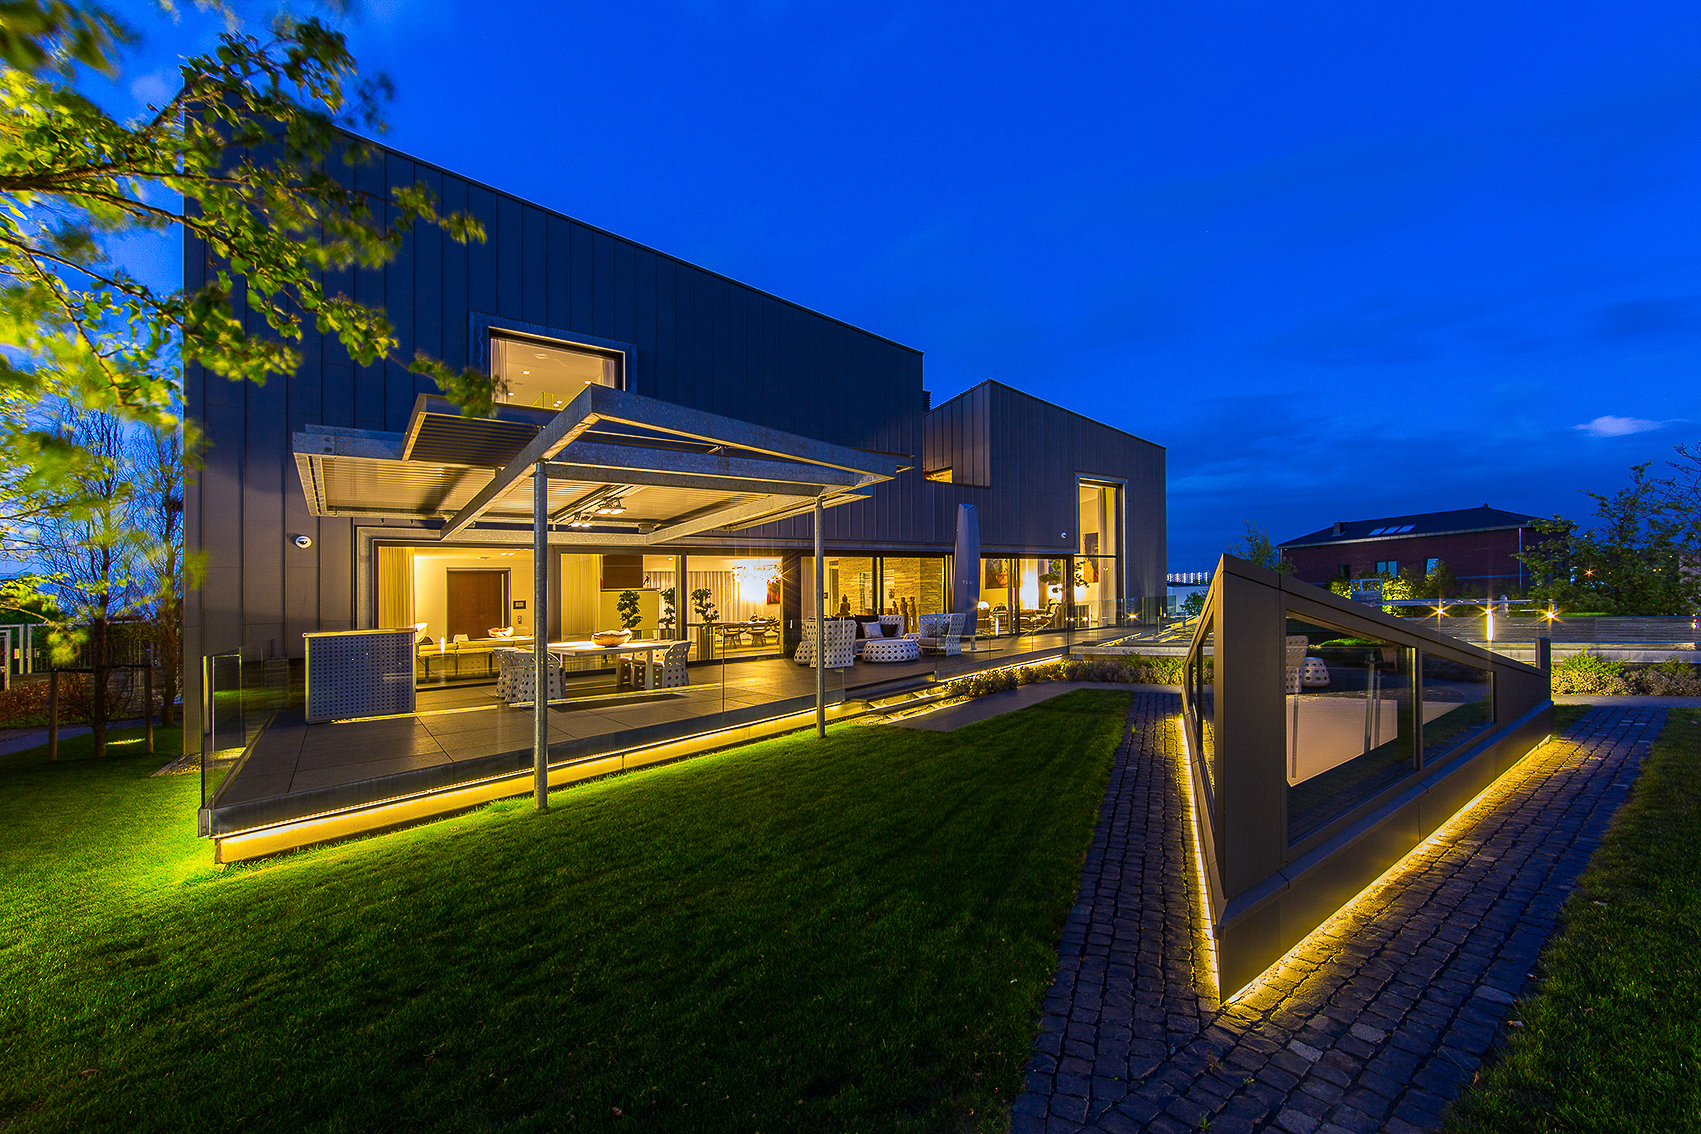 Single Family Home for Sale at Breathtaking Modern Villa Koningskaars 8 Heerlen, Limburg 6418 PR Netherlands